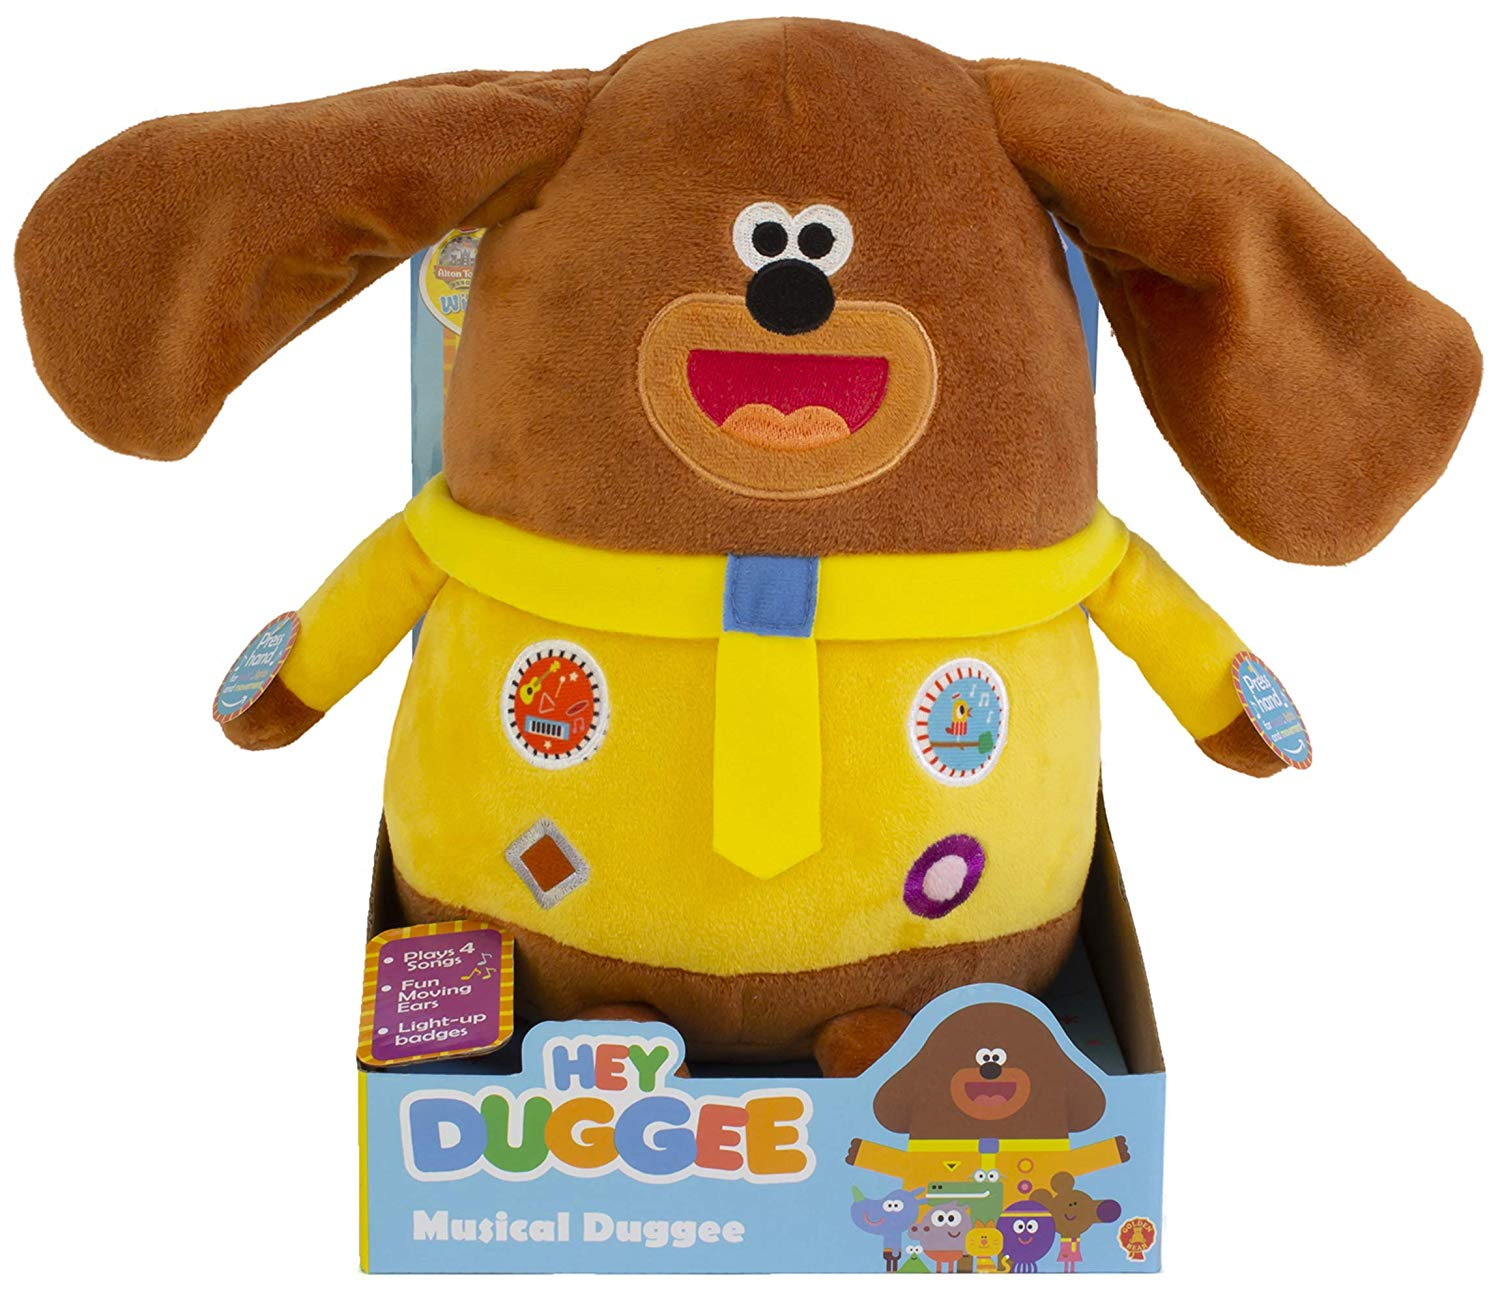 Purse and more Ideal Hanging Toy and easily Attaches To Backpack Bag Accessory Backpack Identifier Handbag Clothes 17cm Hey Duggee Clip On Keyring Soft Toy